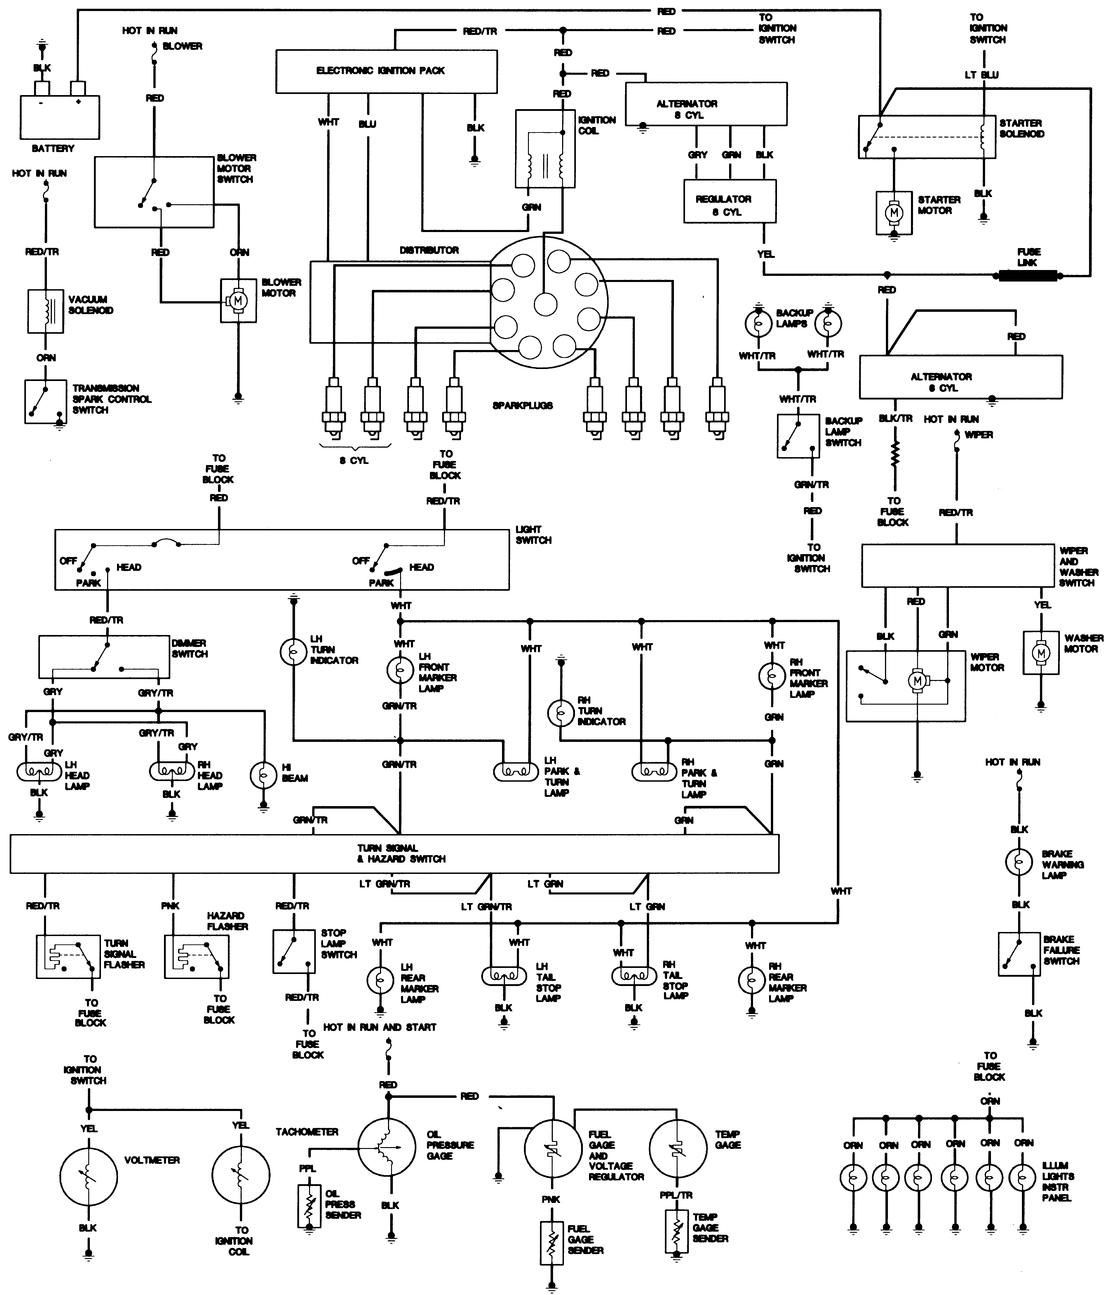 1976 jeep wiring diagram wiring diagram blogs 77 jeep cj7 wiring diagram 1982 cj5 wiring [ 1111 x 1295 Pixel ]